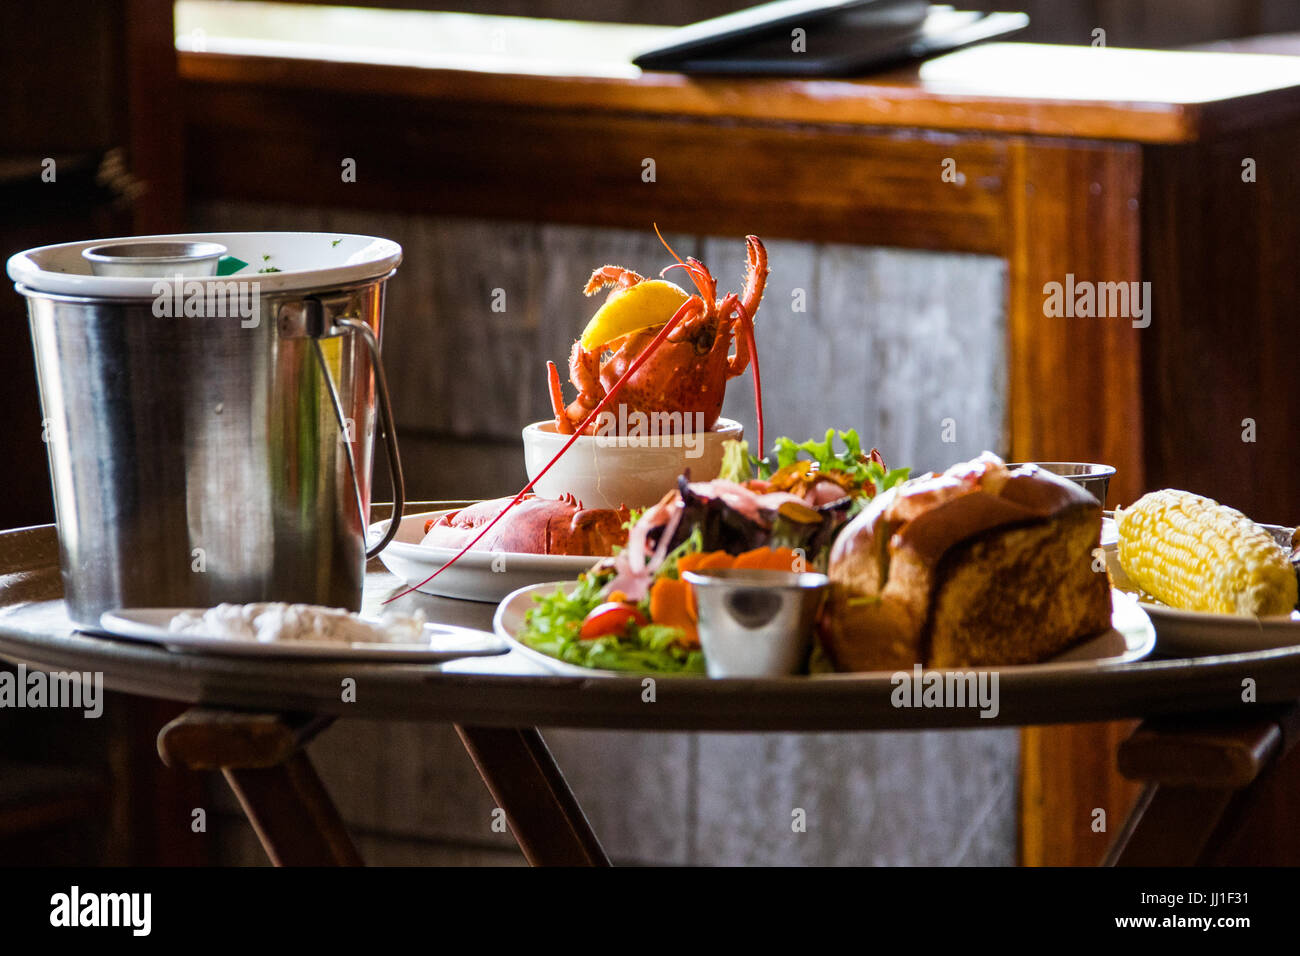 Il Nantucket Lobster Trap Restaurant, Nantucket, MA, Stati Uniti d'America Immagini Stock